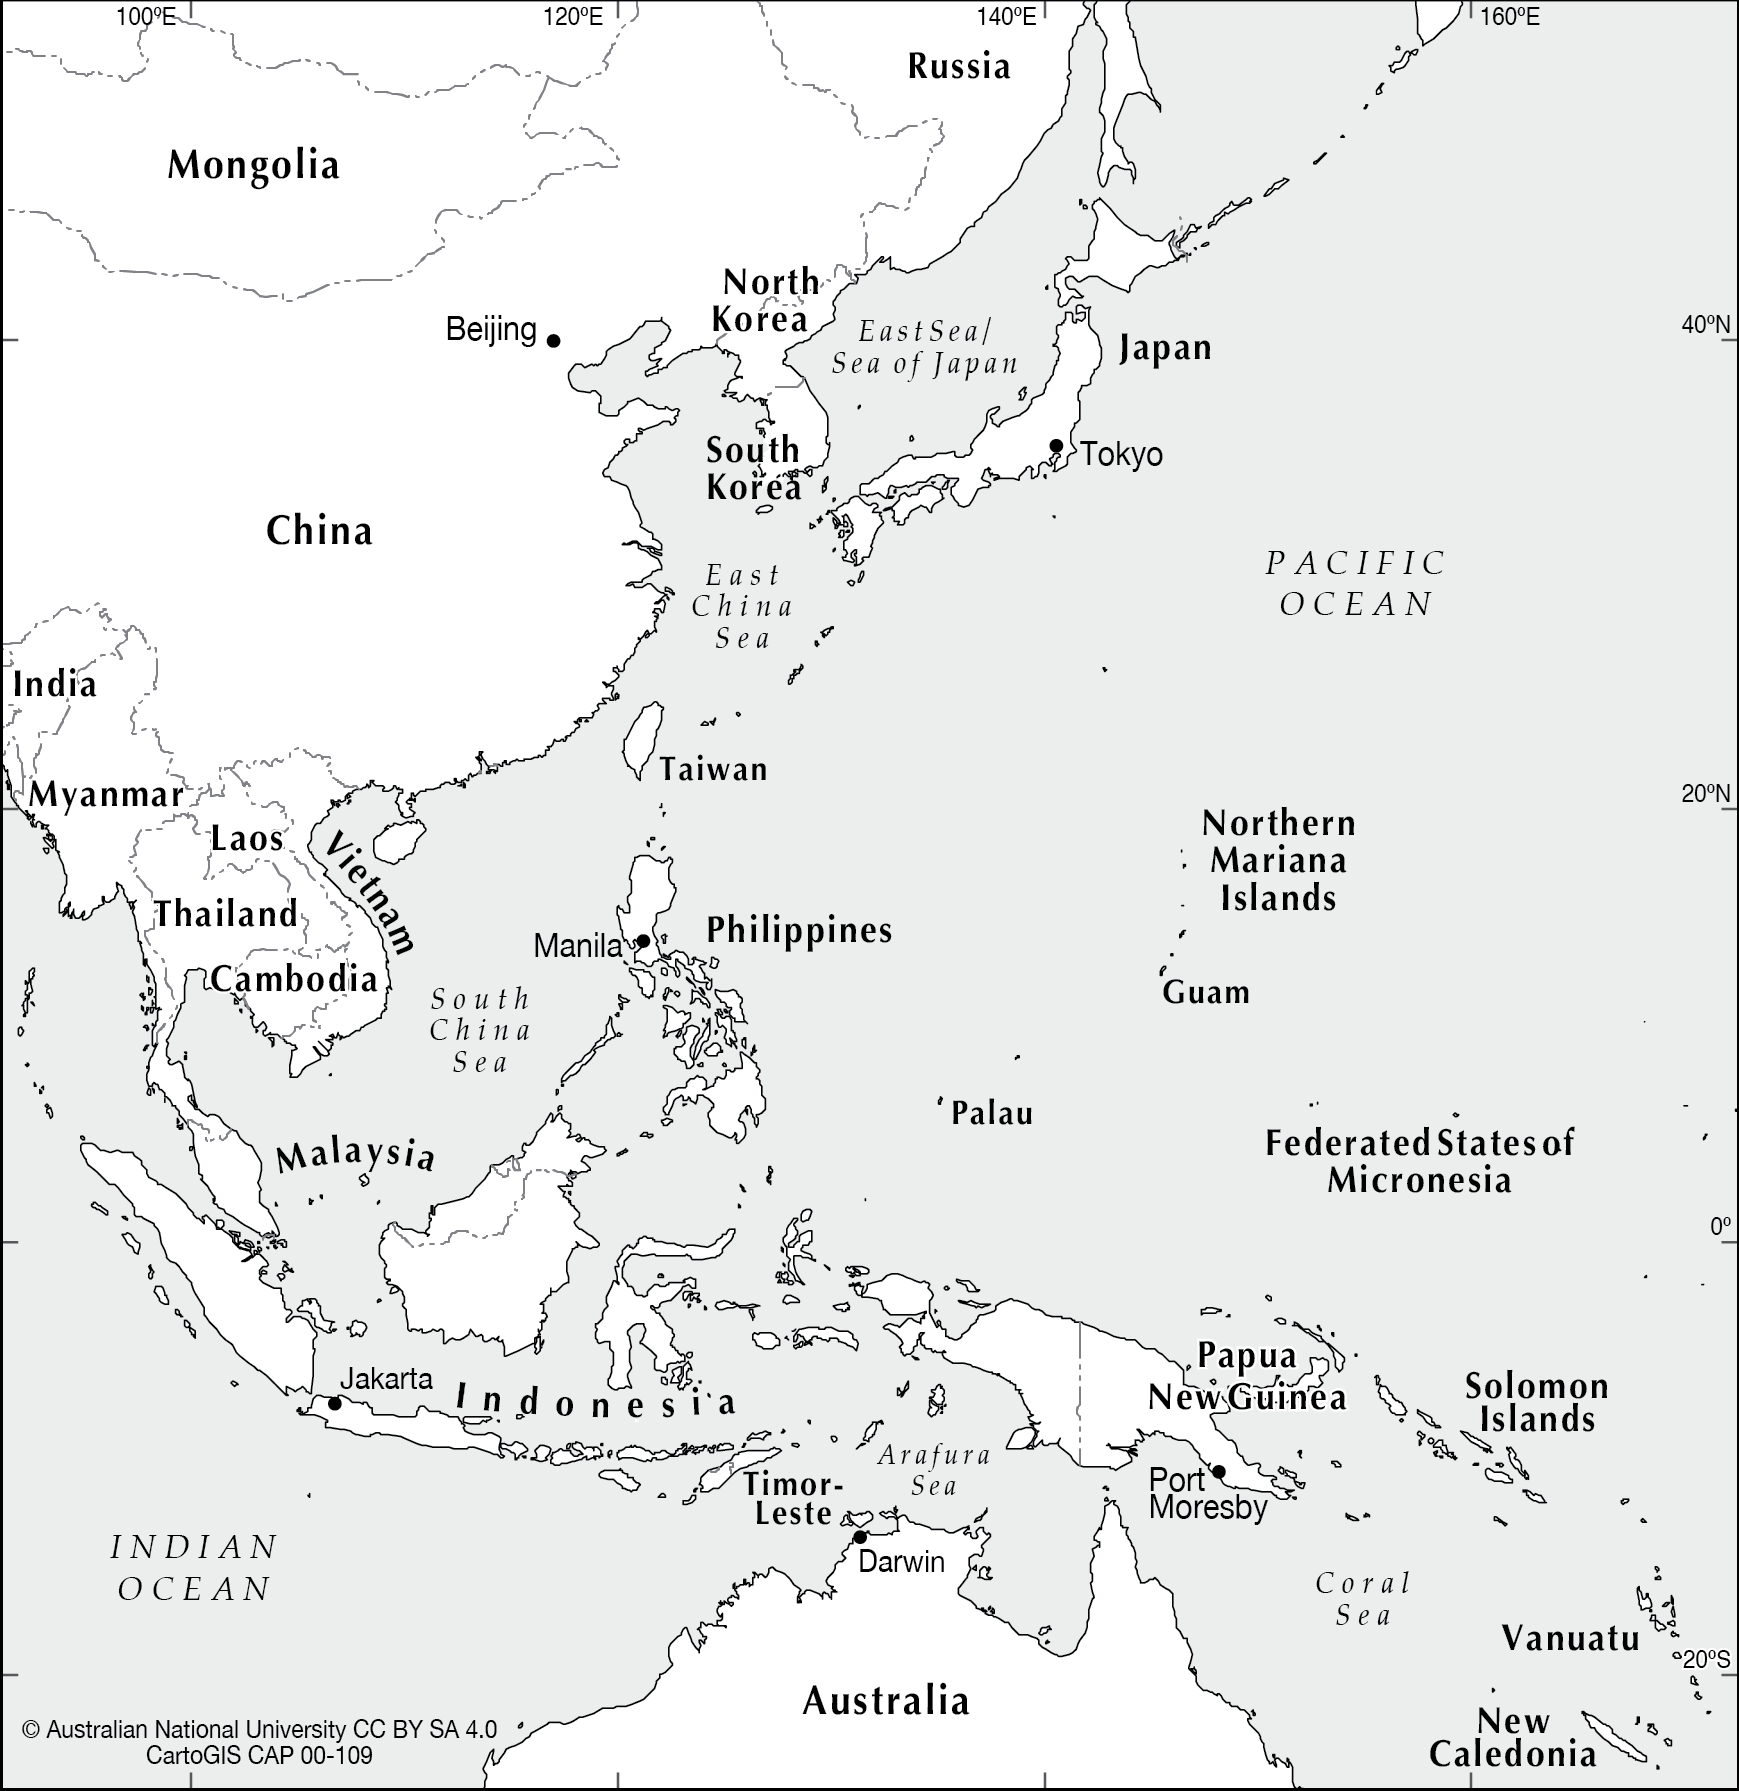 Black Map Of Asia.Se Asia To West Pacific Cartogis Services Maps Online Anu